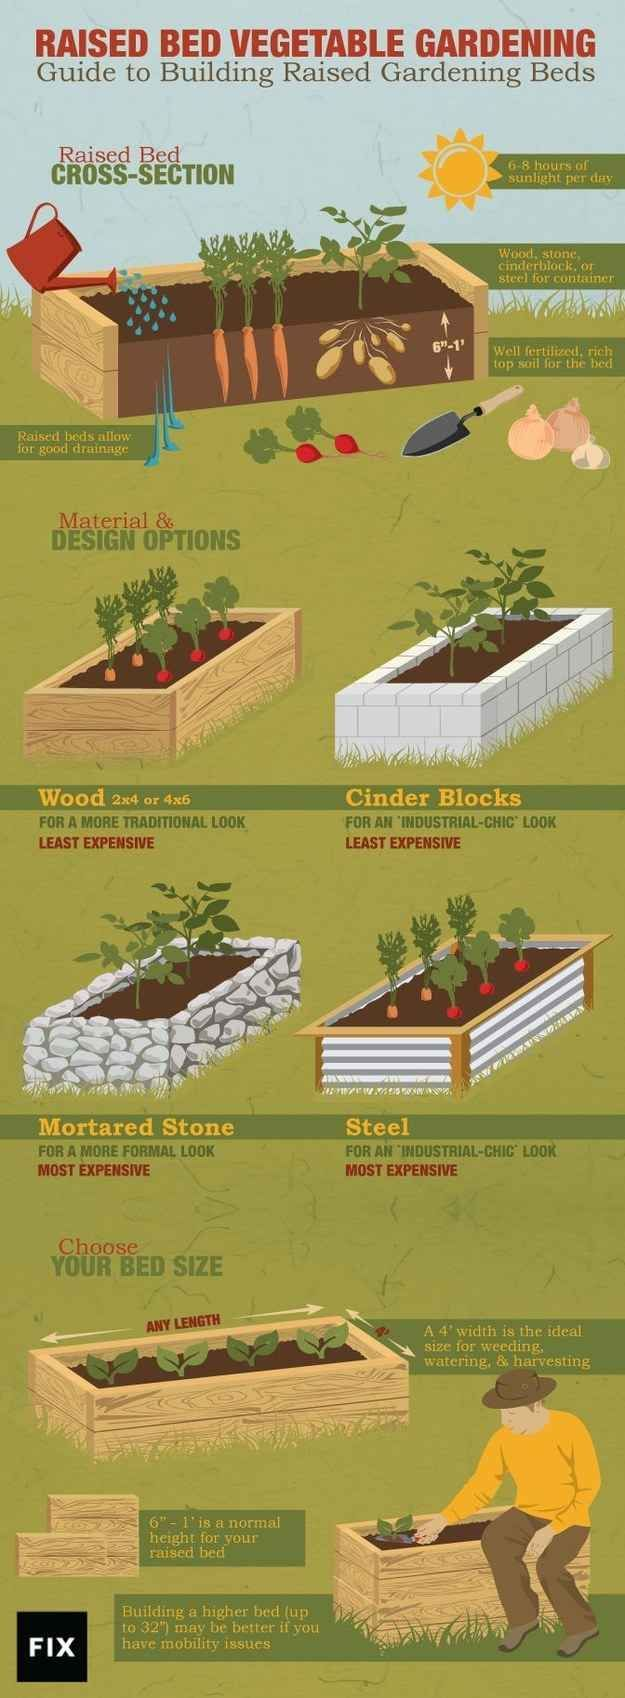 Diagrams That Make Gardening So Much Easier Raised gardening beds keep vegetables away from contaminated soil, can deter some pests, and are easier on backs and knees—here's some information about how to make one.Raised gardening beds keep vegetables away from contaminated soil, can deter some pests, and are easier on backs and knees—here's some infor...